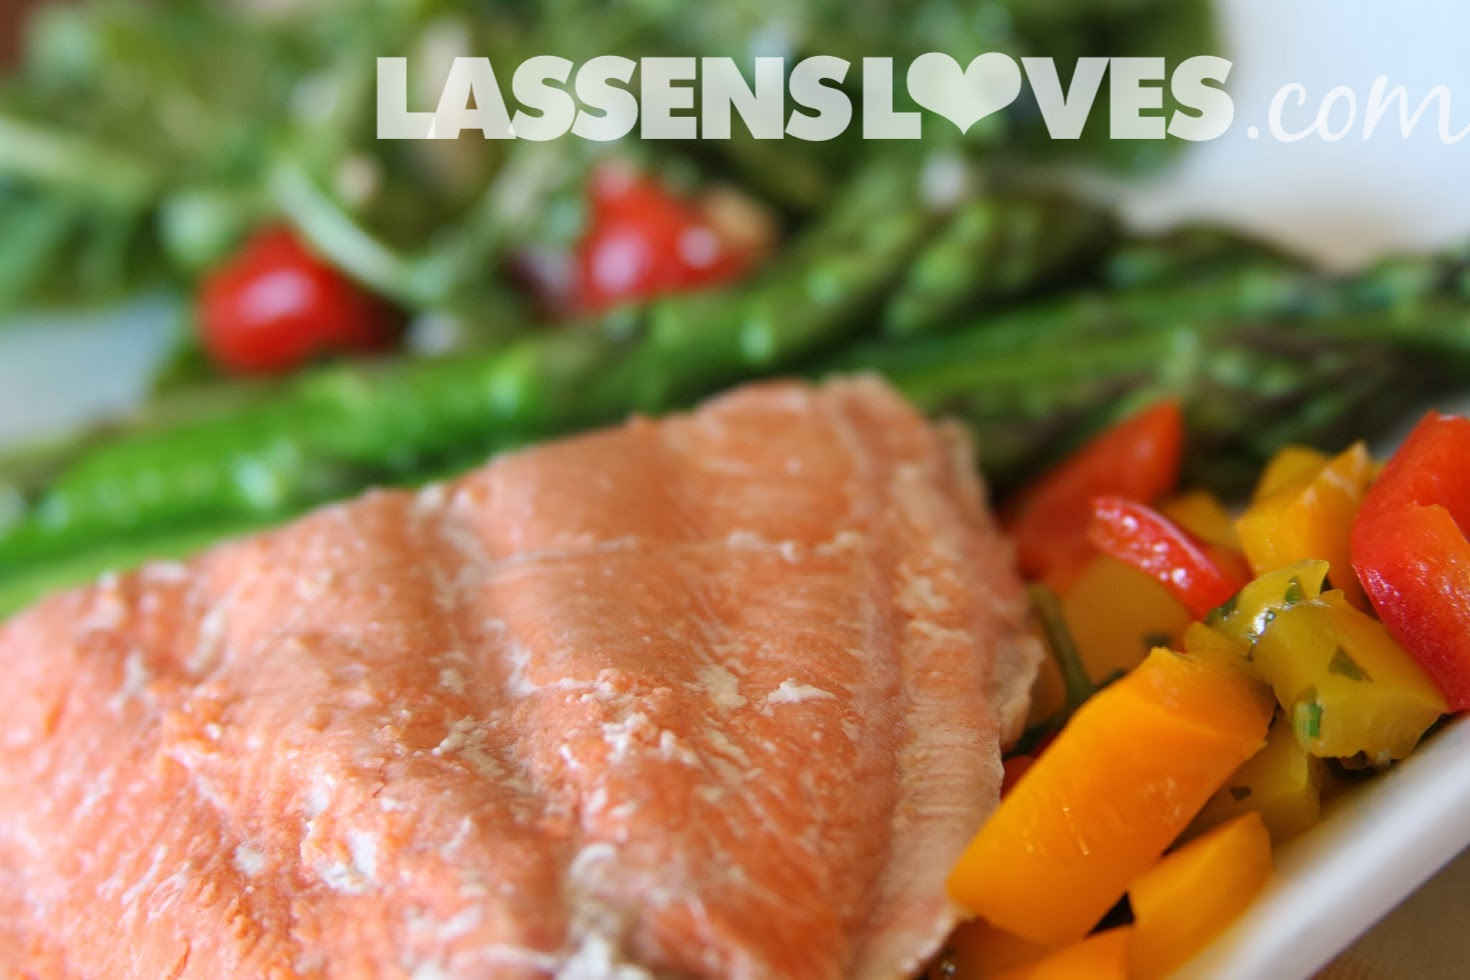 lassensloves.com, Lassen's, Lassens, wild+caught+fish, wild+caught+salmon